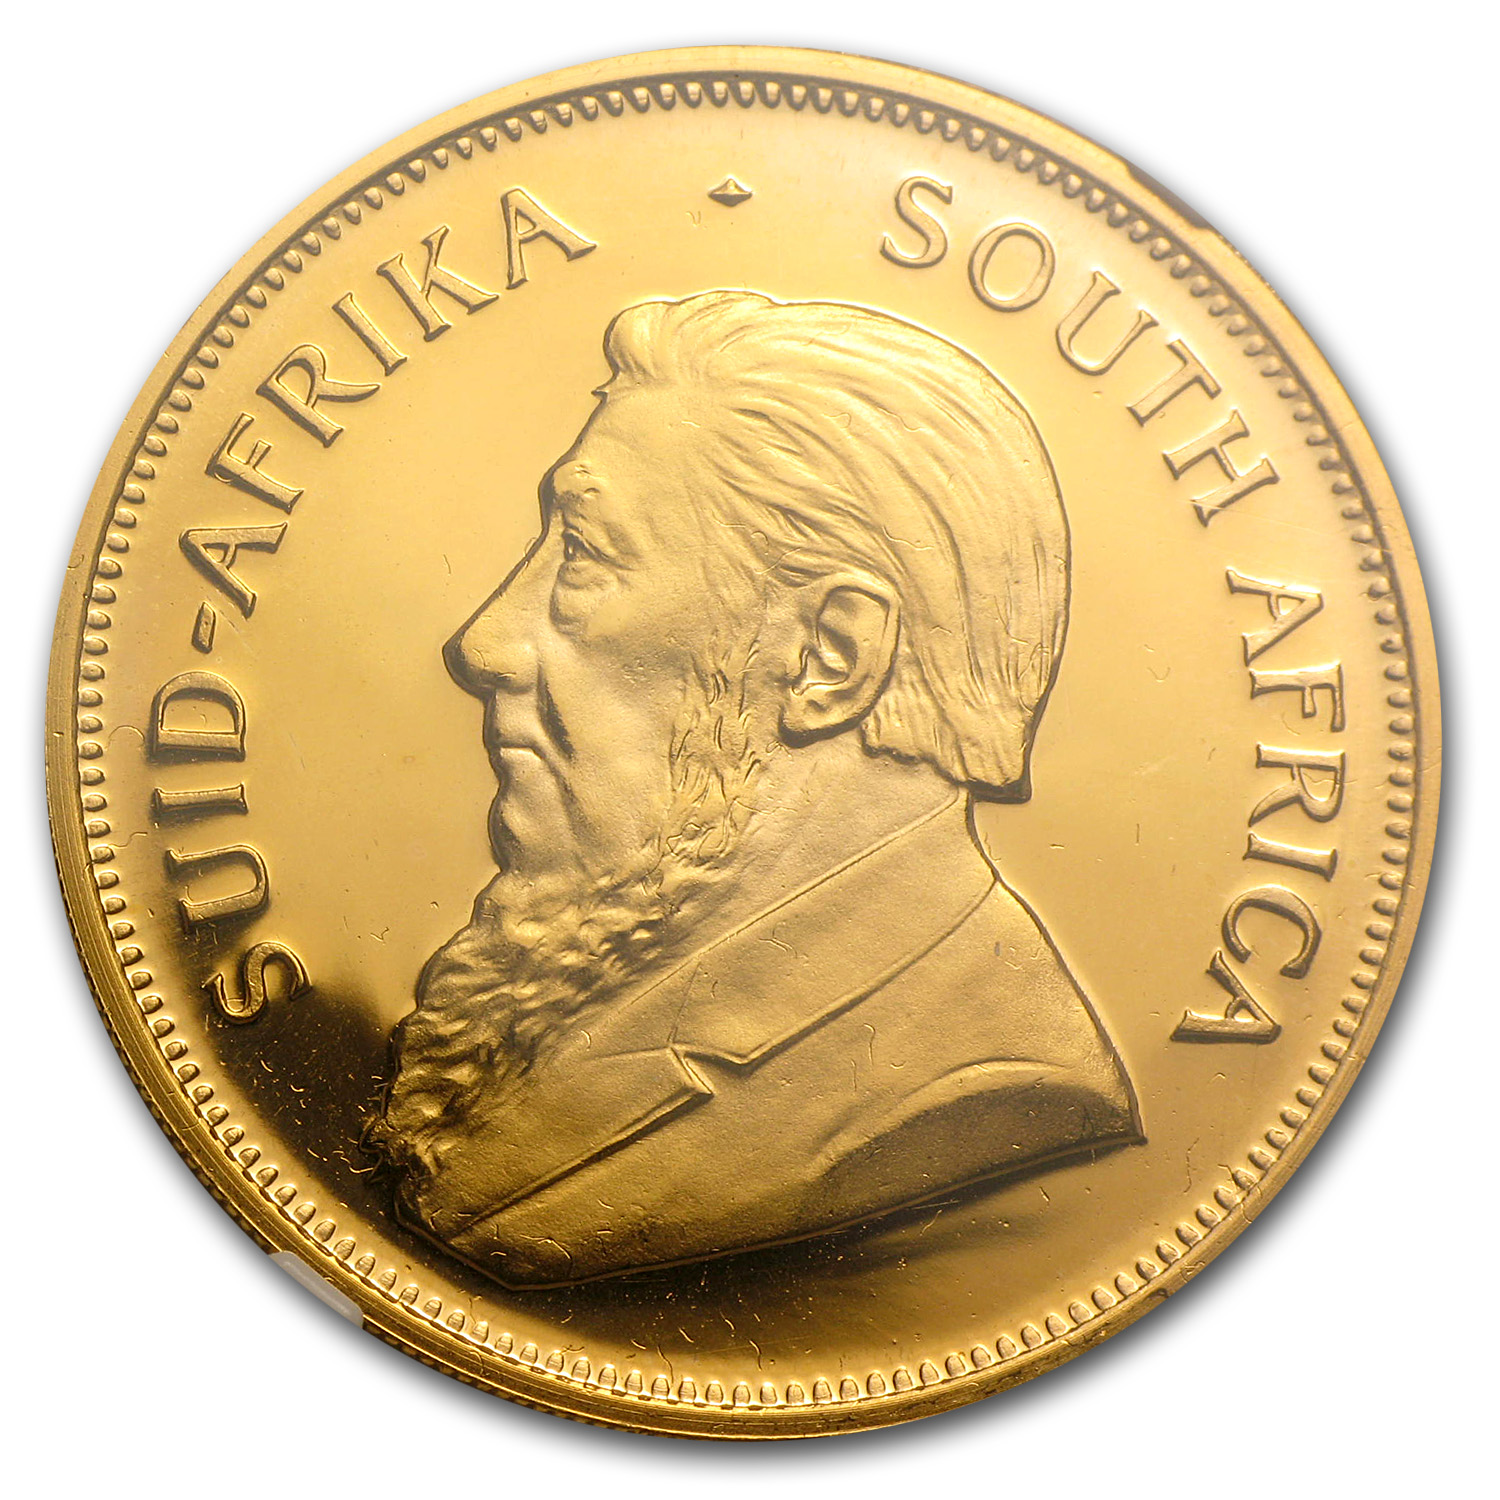 1987 South Africa 1 oz Gold Krugerrand PF-68 NGC (GRC)